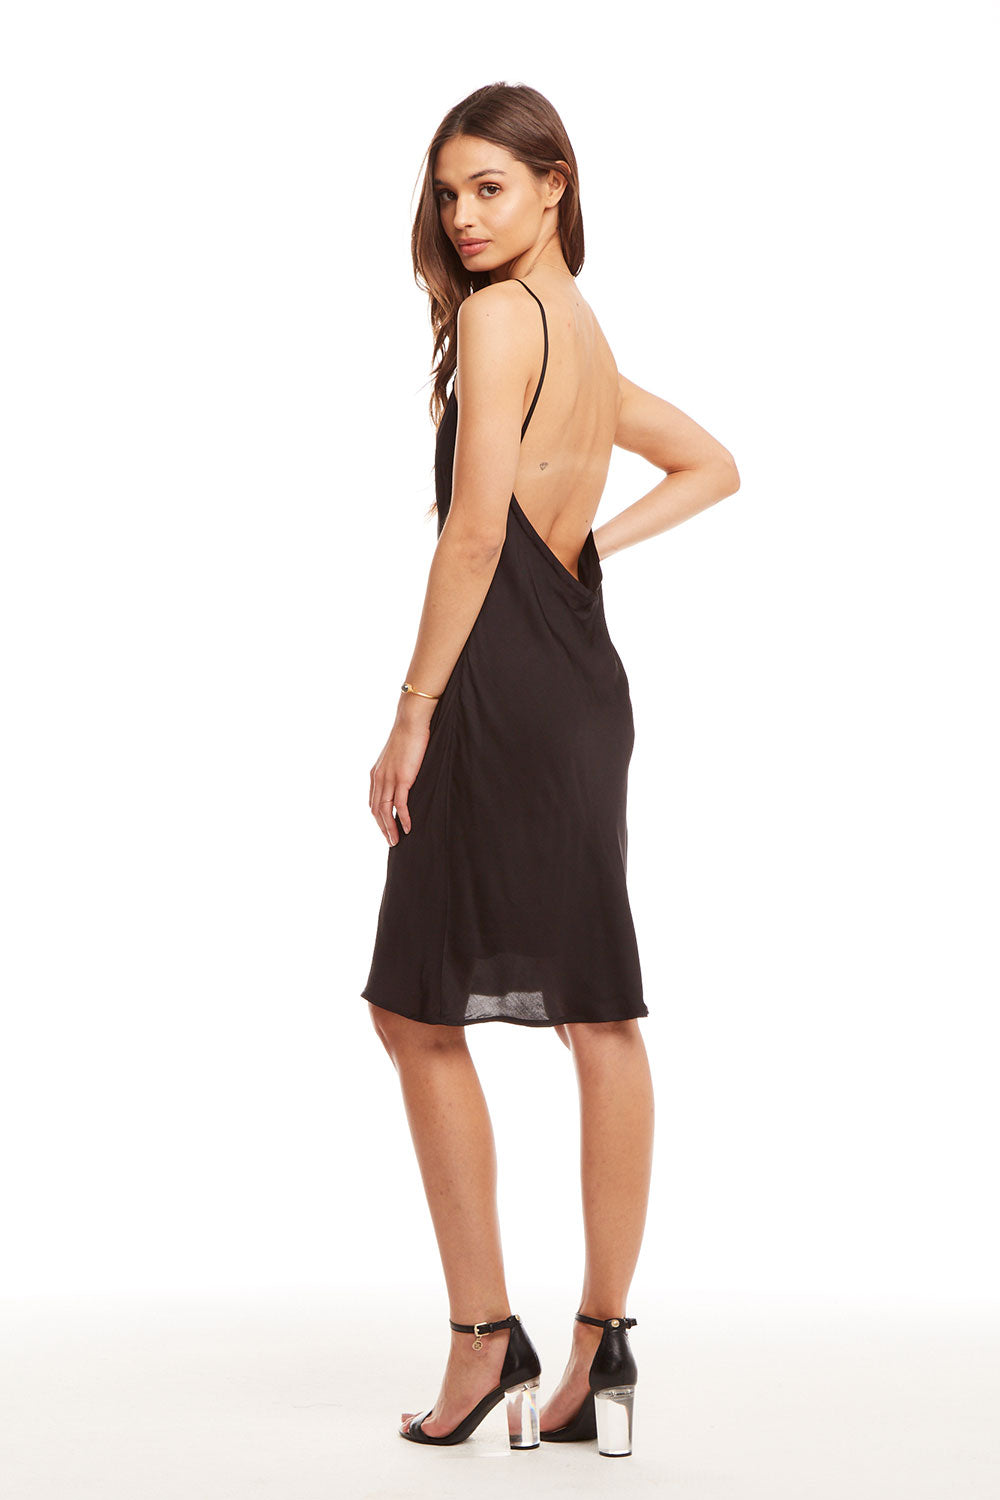 c80b7505865f Silky Basics Deep Scoop Back Midi Slip Dress, WOMENS, chaserbrand.com,chaser